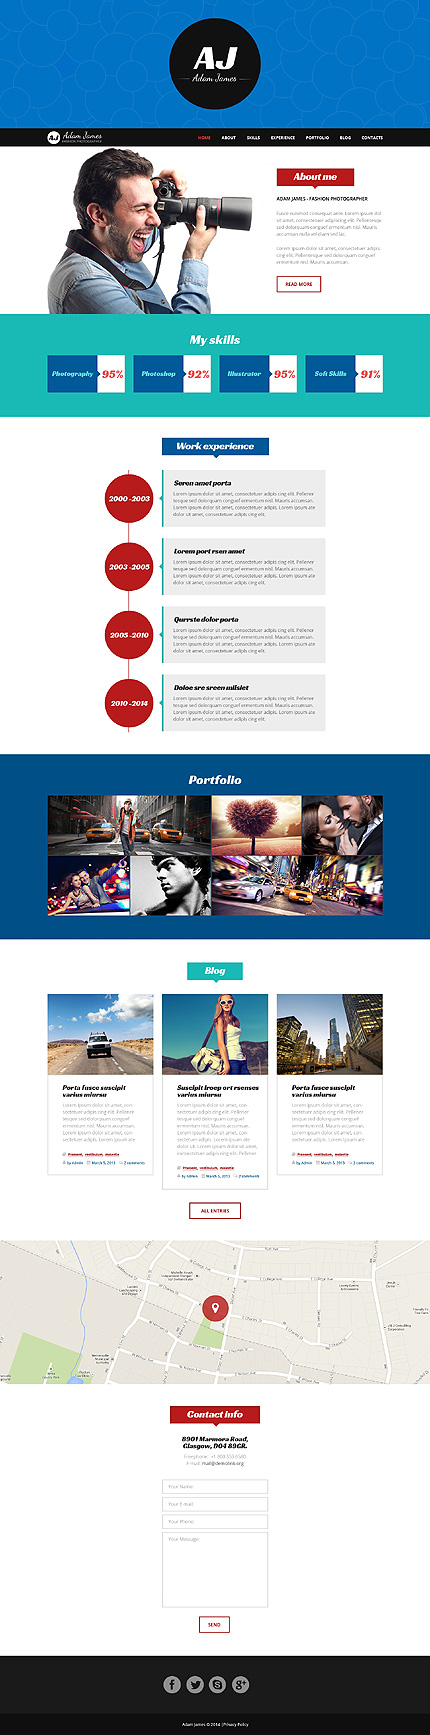 Page of Fashion Photographer WordPress Template